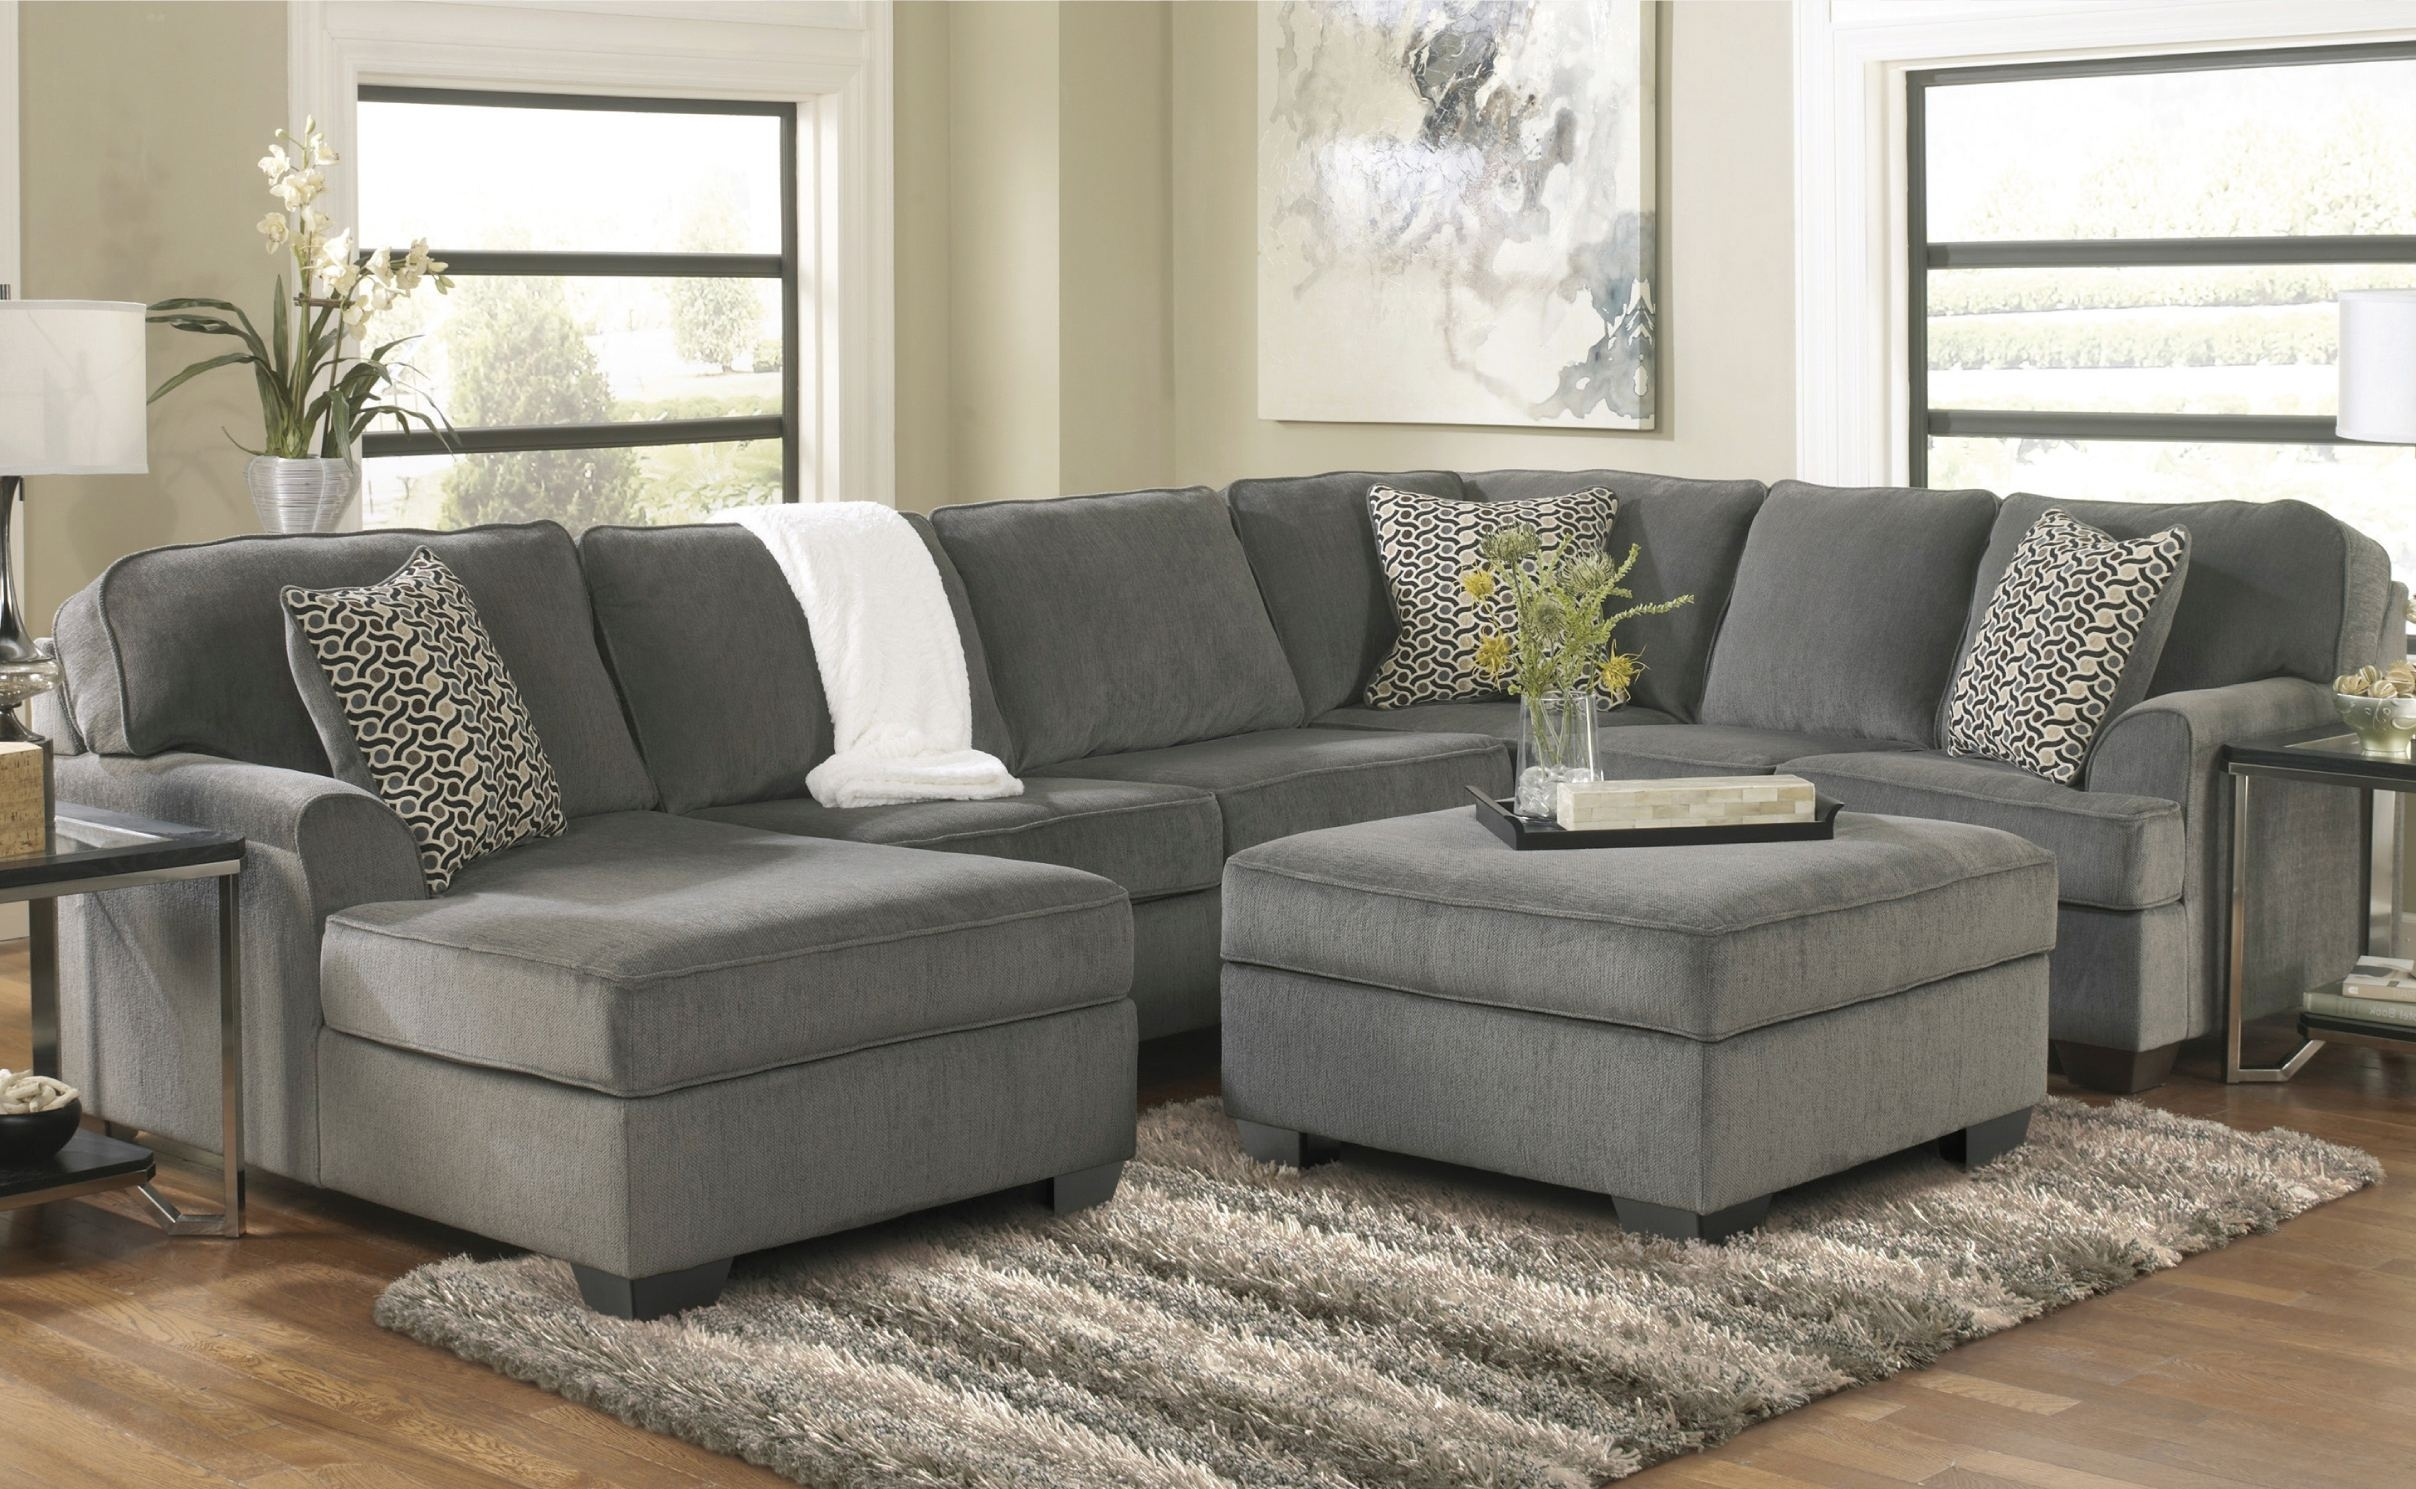 Clearance Sectional Sofa | Sristicabletv regarding Clearance Sectional Sofas (Image 3 of 15)